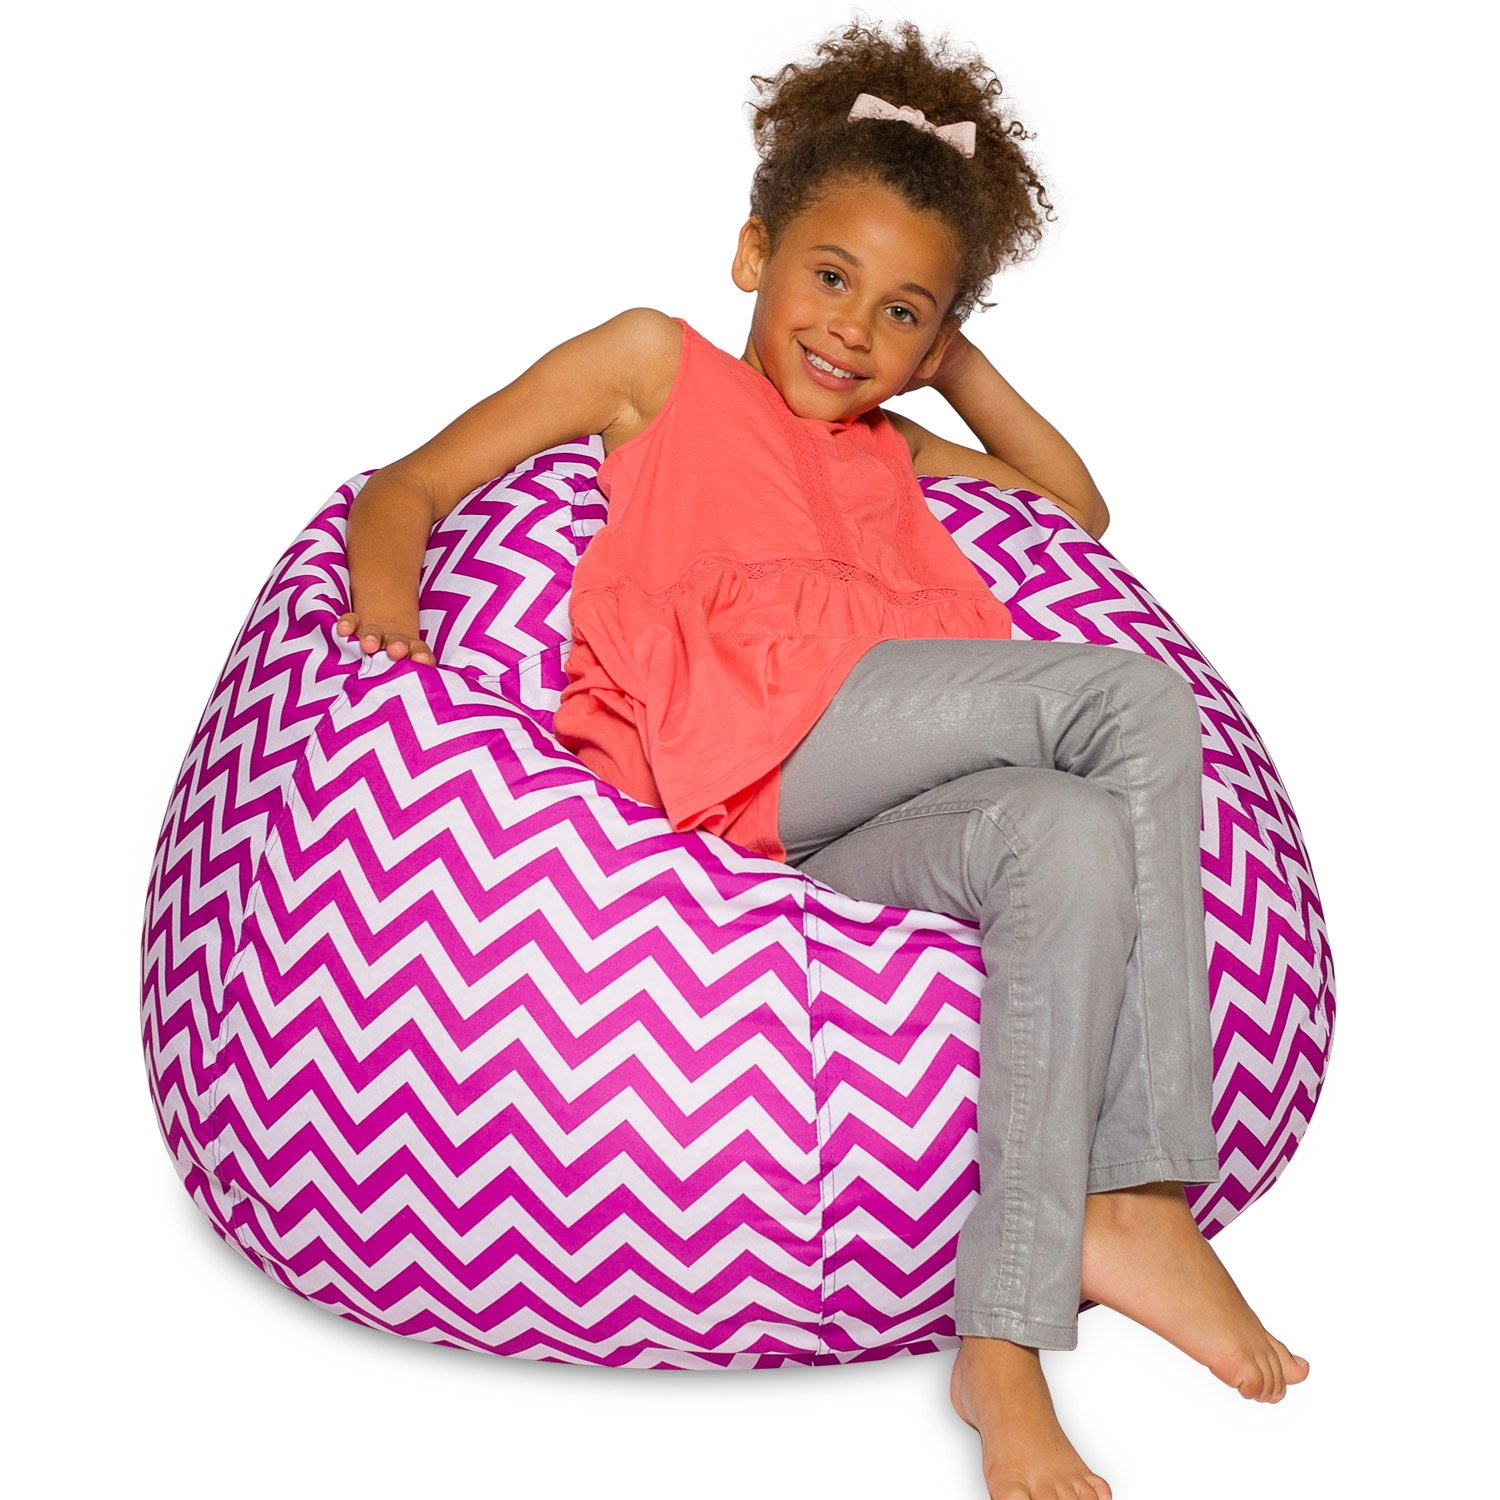 Big Comfy Bean Bag Chair: Posh Large Beanbag Chairs with Removable Cover for Kids, Teens and Adults - Polyester Cloth Puff Sack Lounger Furniture for All Ages - 27 Inch - Chevron Purple and White by Posh Beanbags